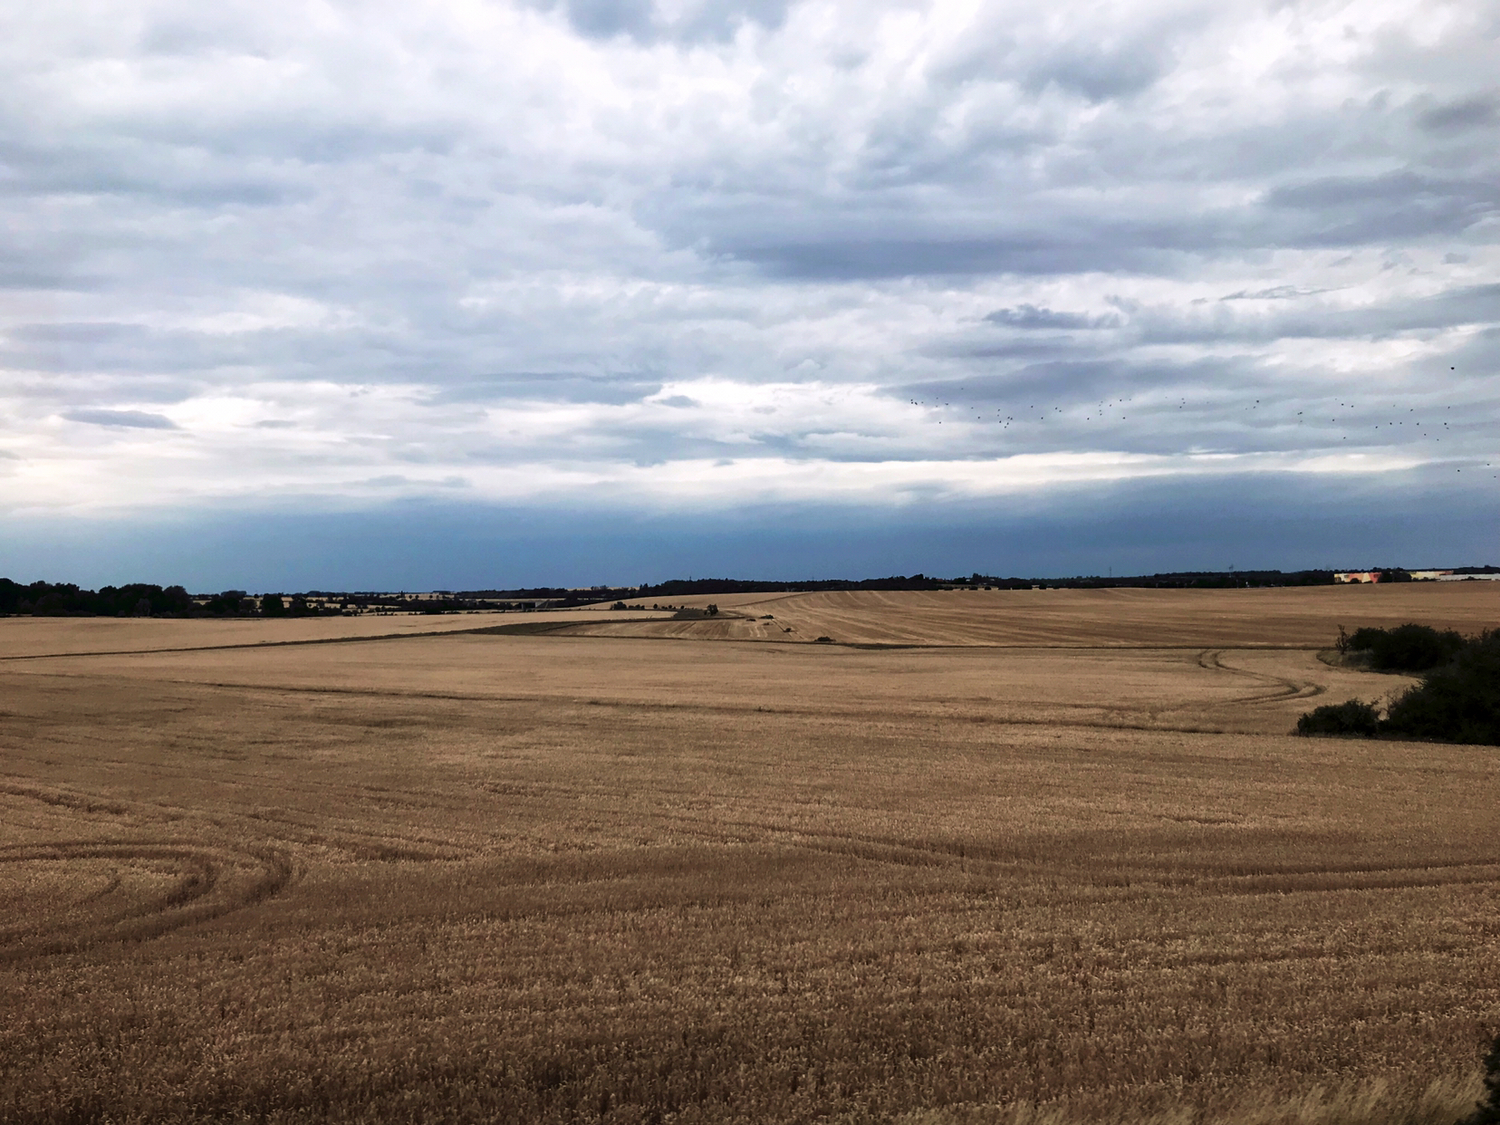 Monotonous landscapes created by agricultural intensification. The CAP reform proposed by the EU risks the expansion of such landscapes, according to the scientists.